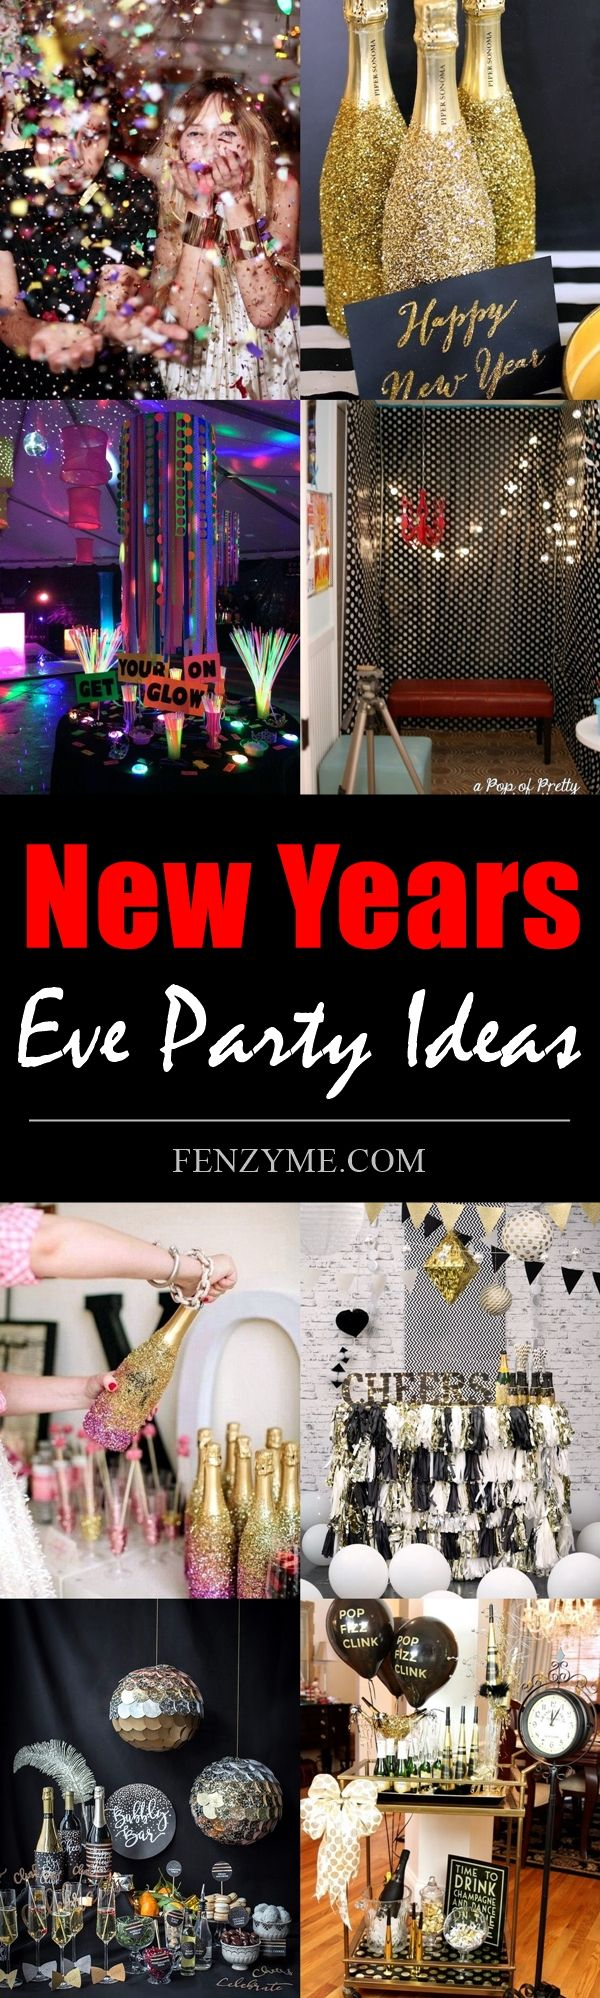 best 25 new years eve outfits ideas on pinterest new. Black Bedroom Furniture Sets. Home Design Ideas